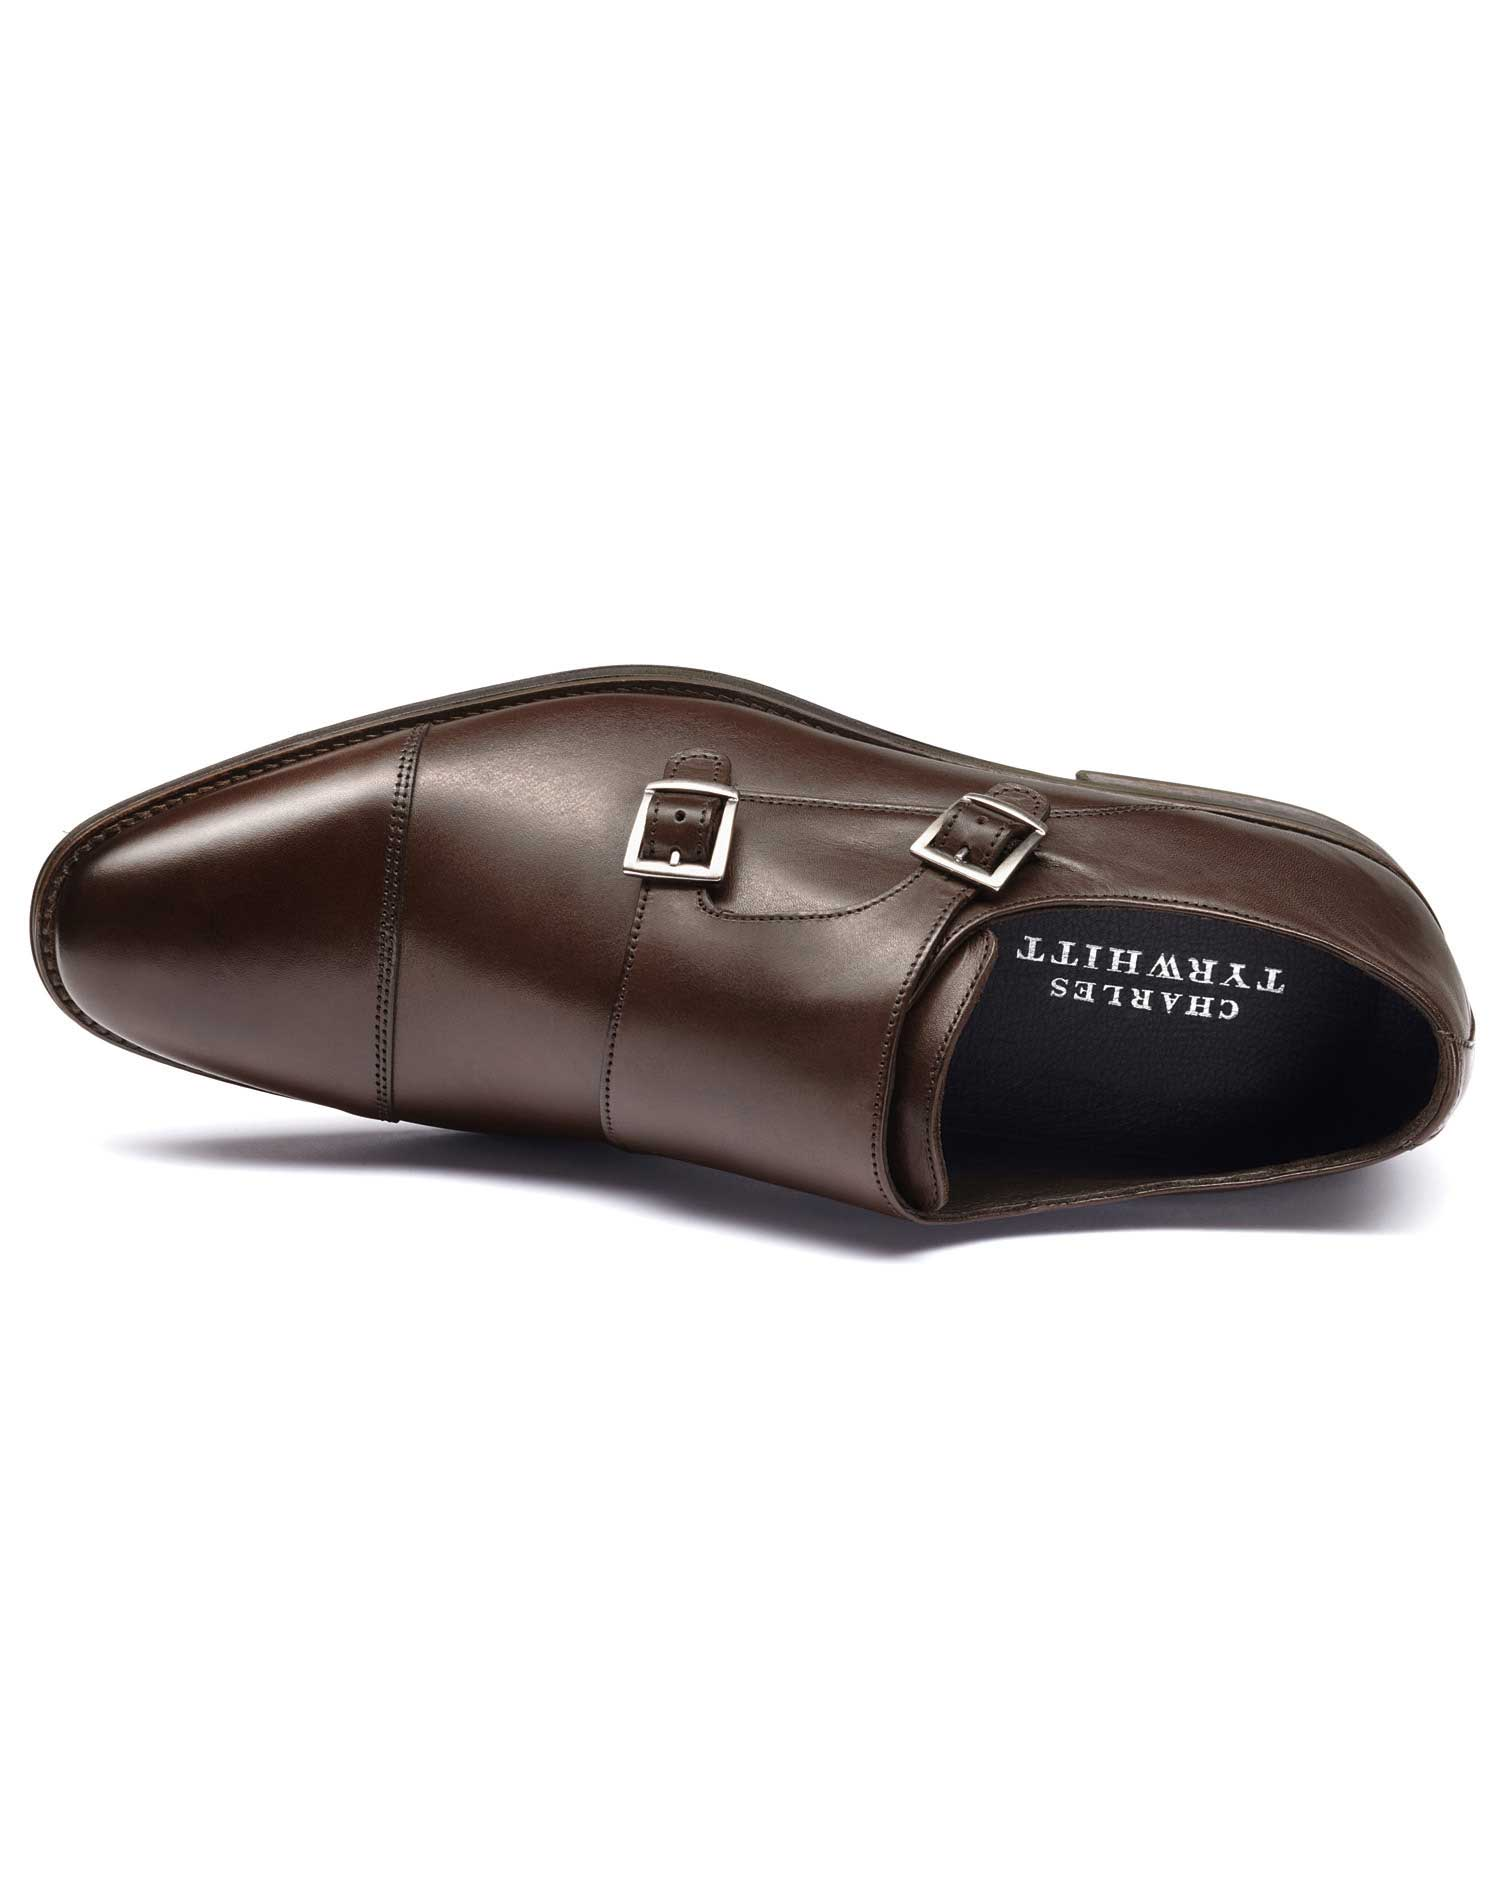 Brown Silverwell Toe Cap Monk Shoes Size 9.5 R by Charles Tyrwhitt